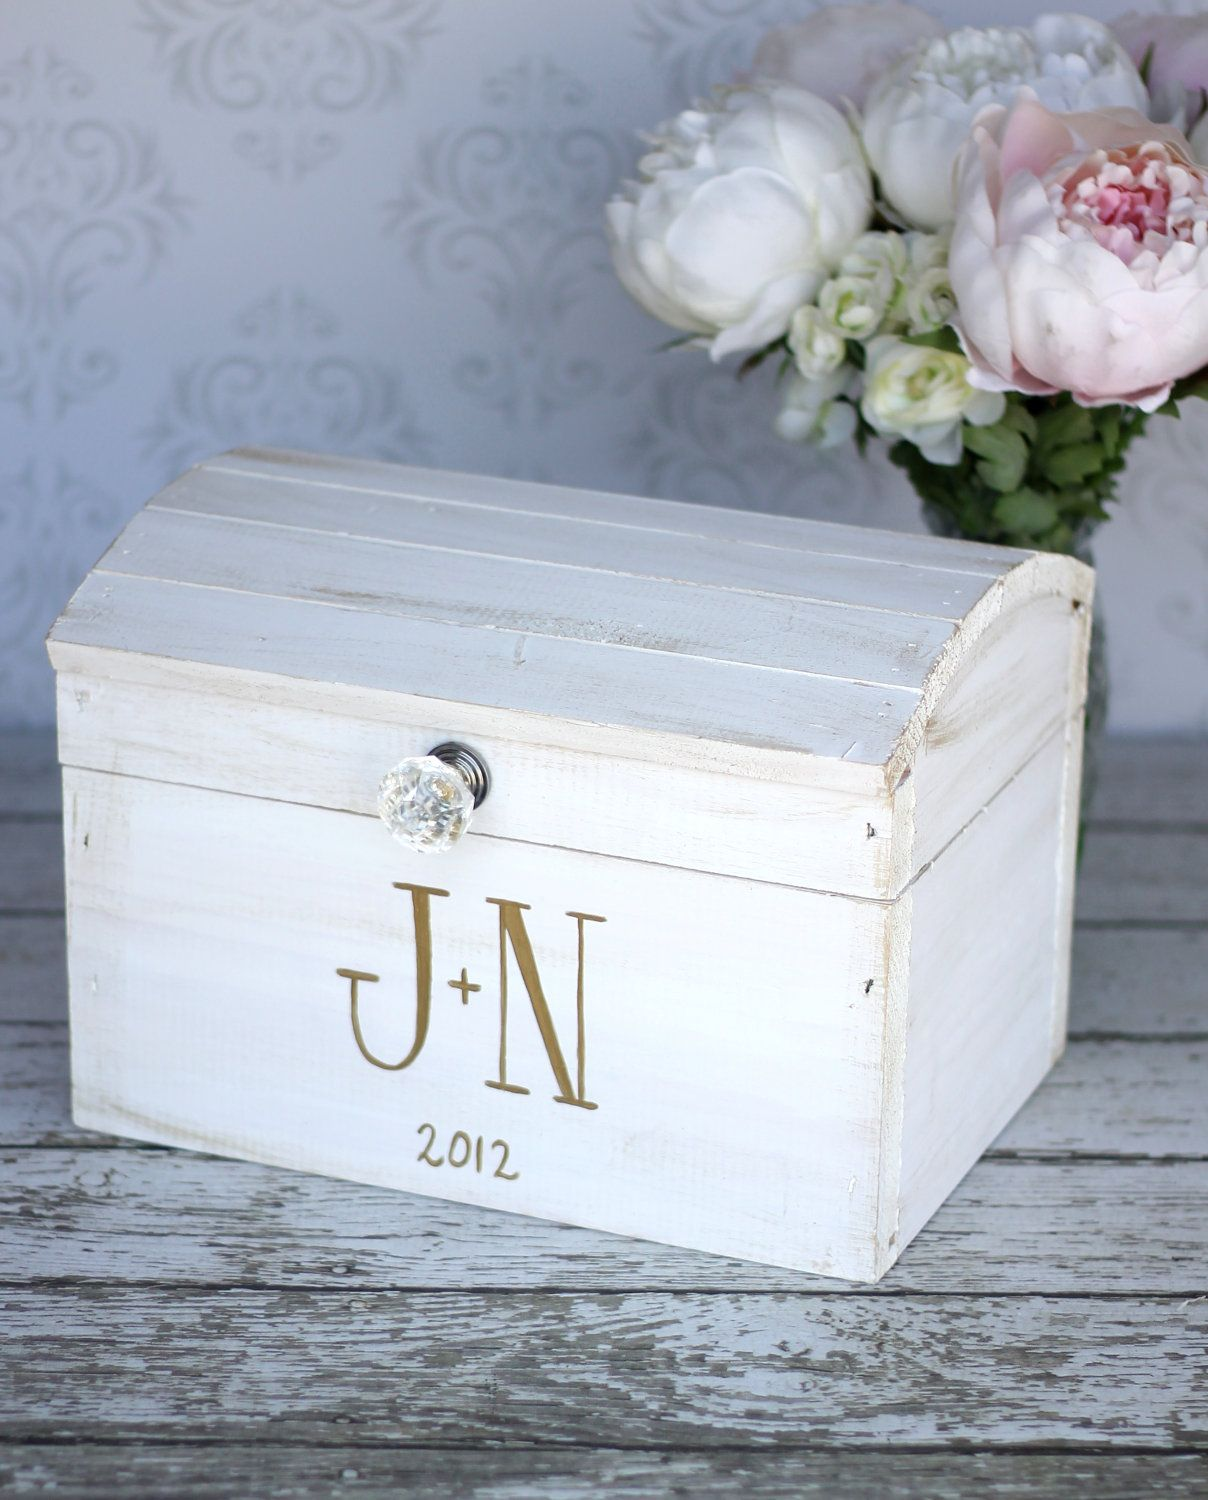 wood wedding card holders%0A White Washed Wooden Wedding Card Box Trunk  Vintage Shabby Chic Wedding  Decor  White  Gray  Silver  White Wedding  Wooden Money Box